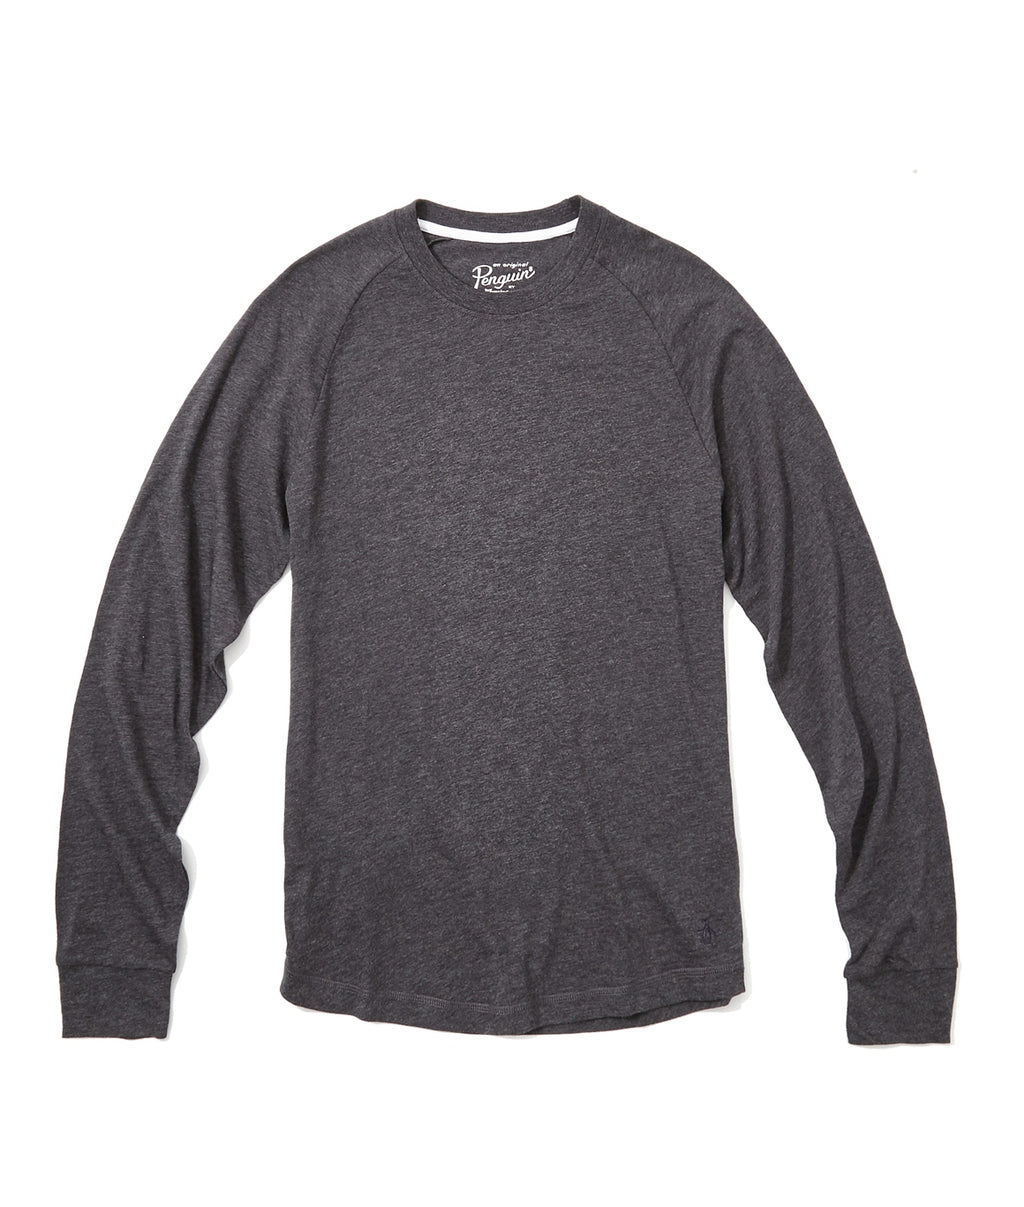 Original Penguin New Bada Heritage LS Tee - DK CHARCOAL HEATHER